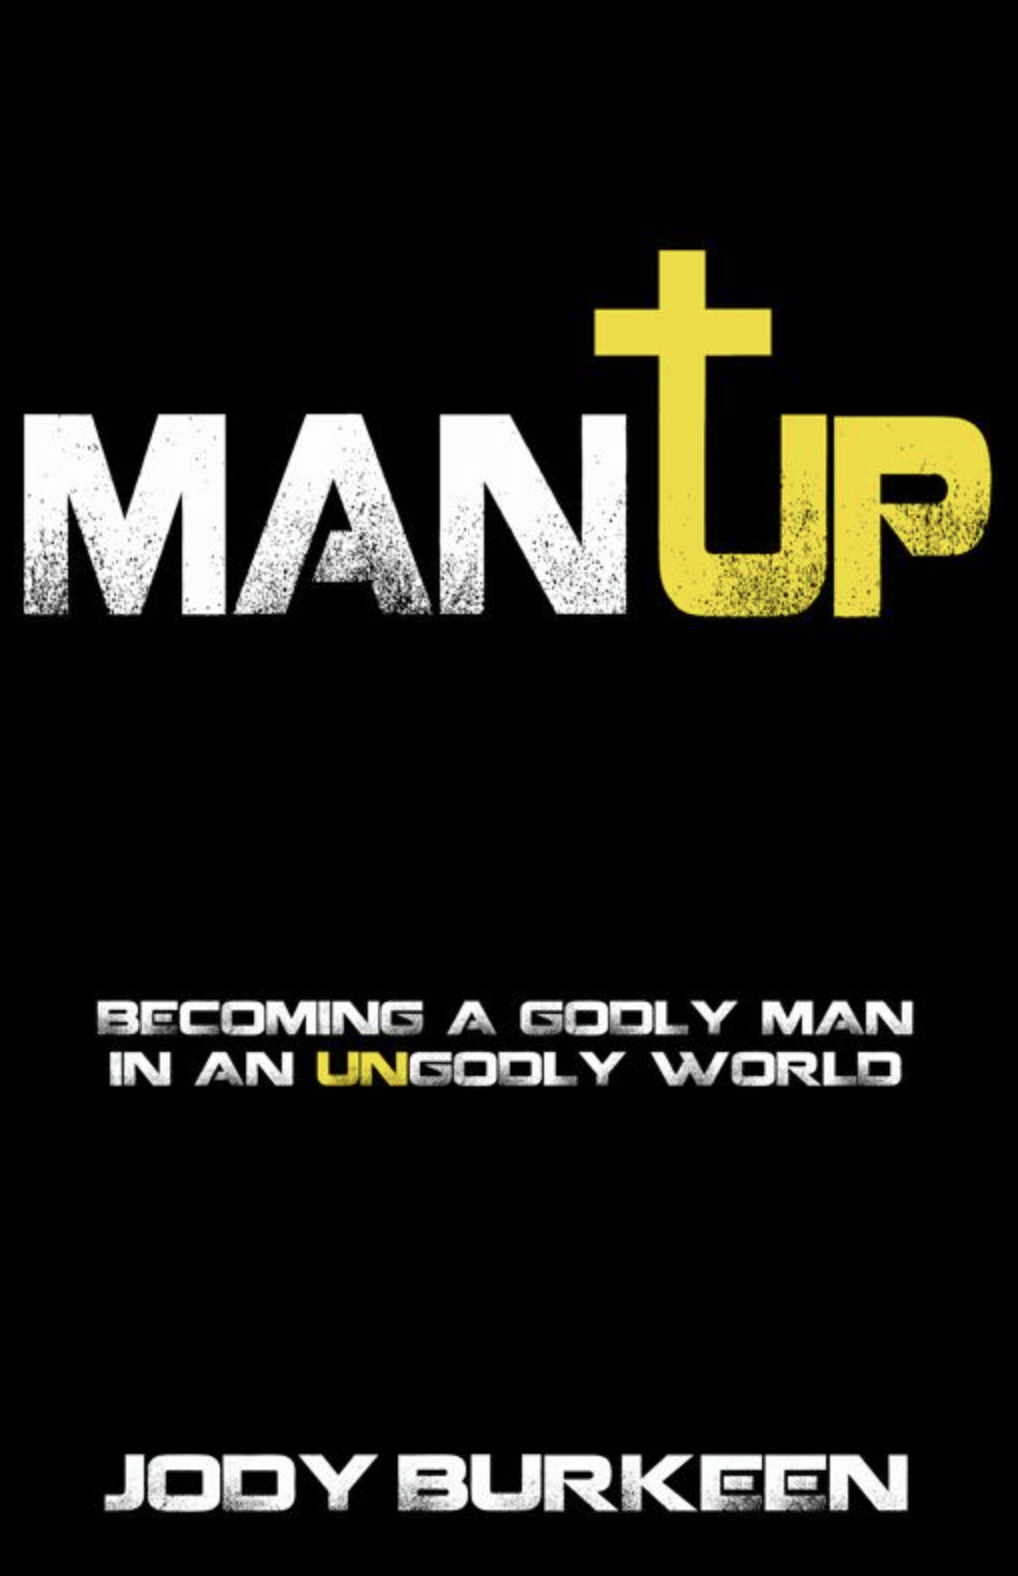 On Becoming Interesting On Temperance: Man Up (J. Burkeen)